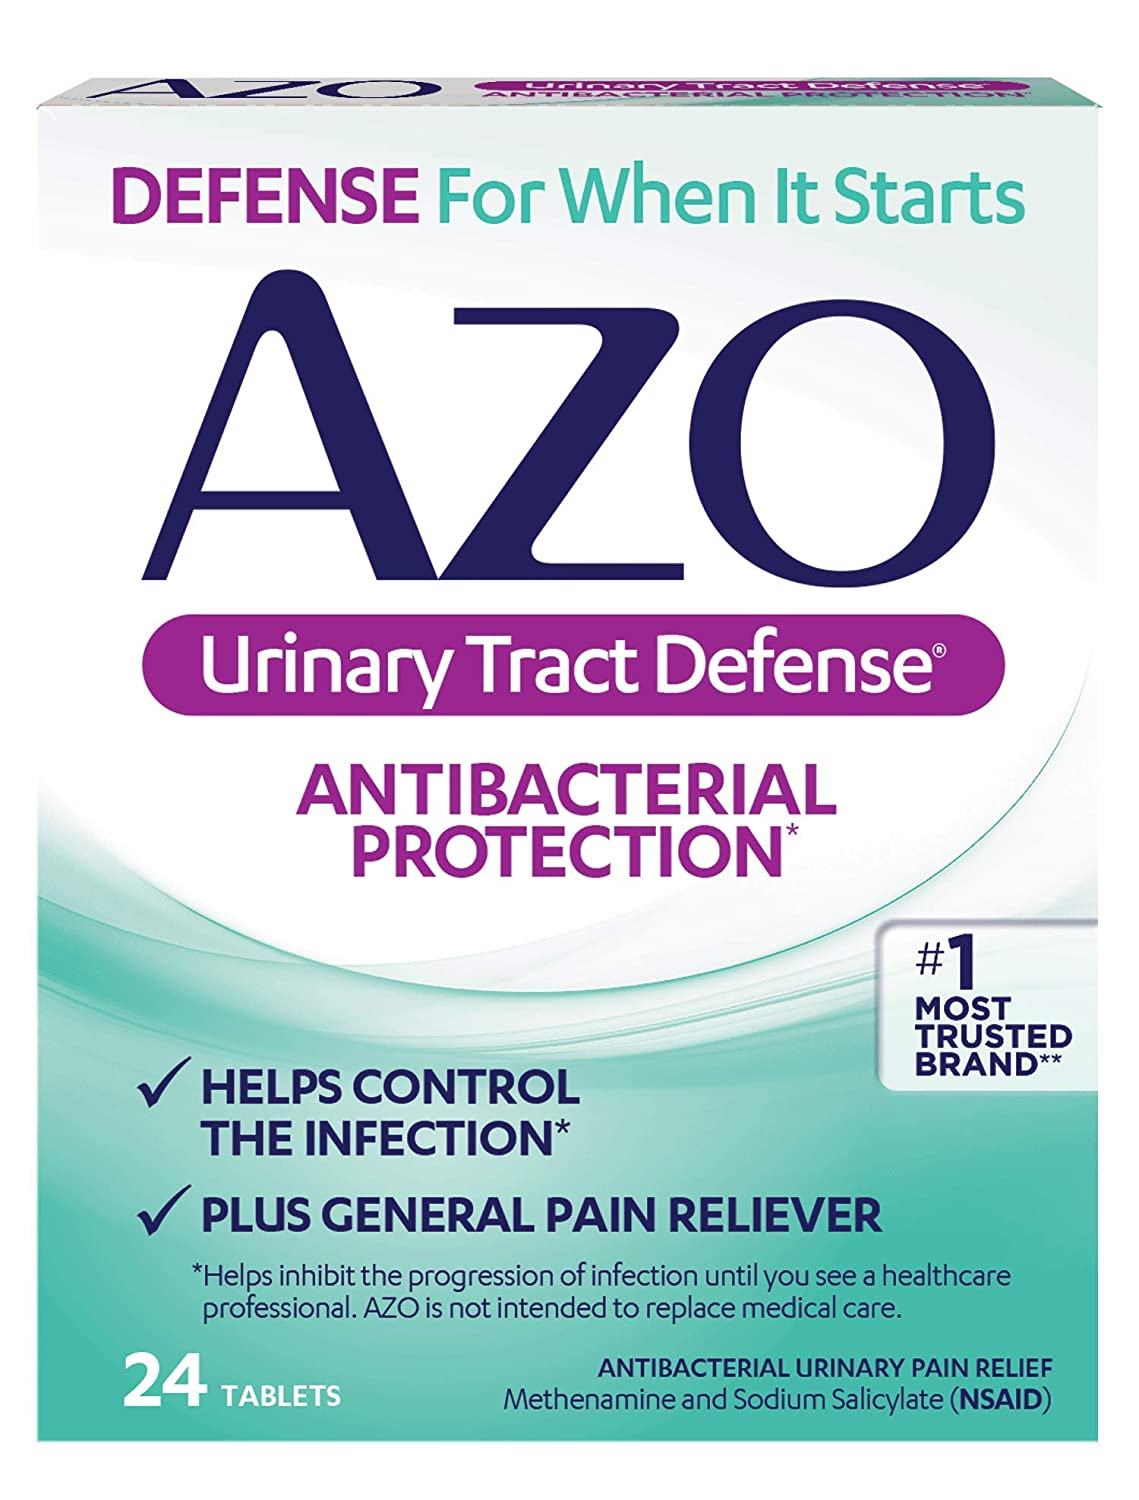 Azo Urinary Tract Defense Antibacterial Protection Helps Control A Uti Until You Can See A Doctor 1